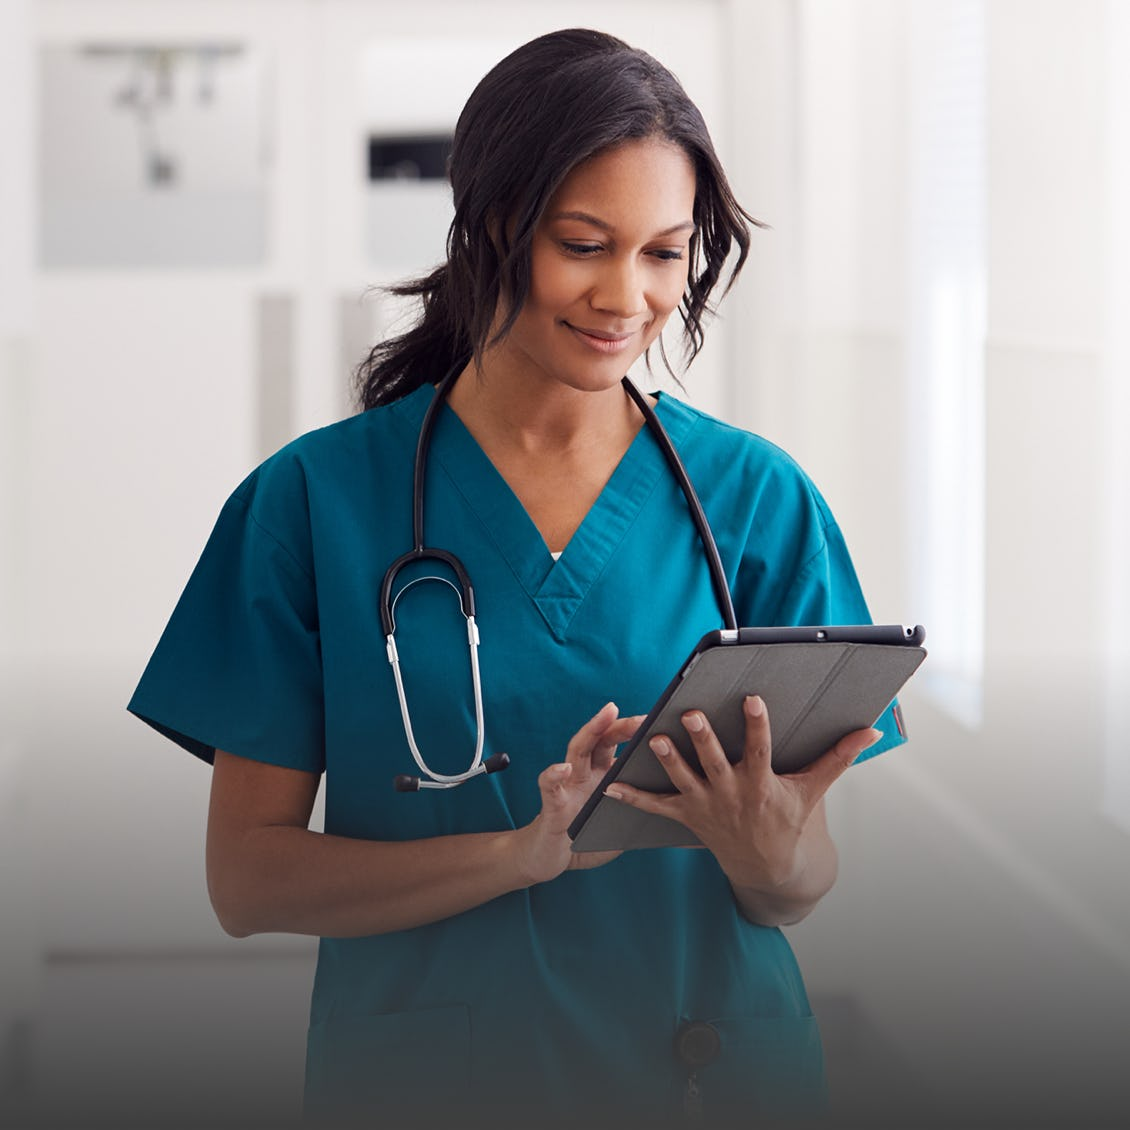 a doctor looking at the Cleveland site on her tablet